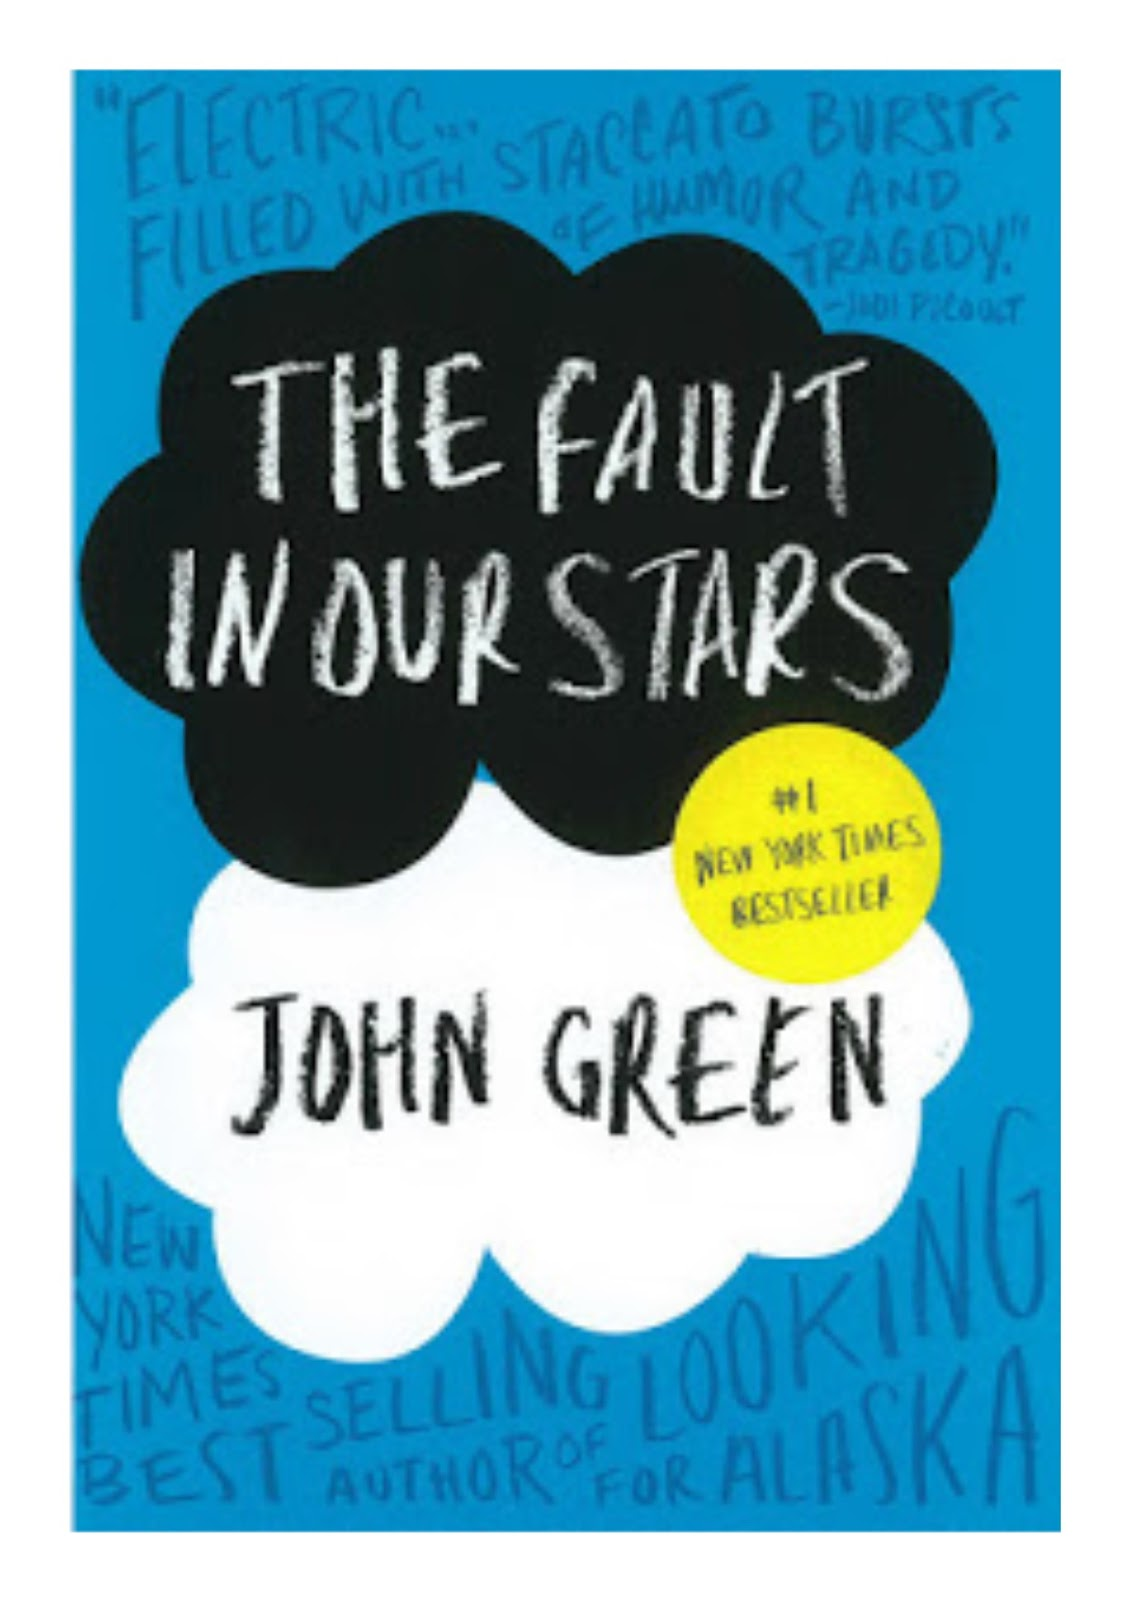 the book review girl: The Fault in our Stars - John Green